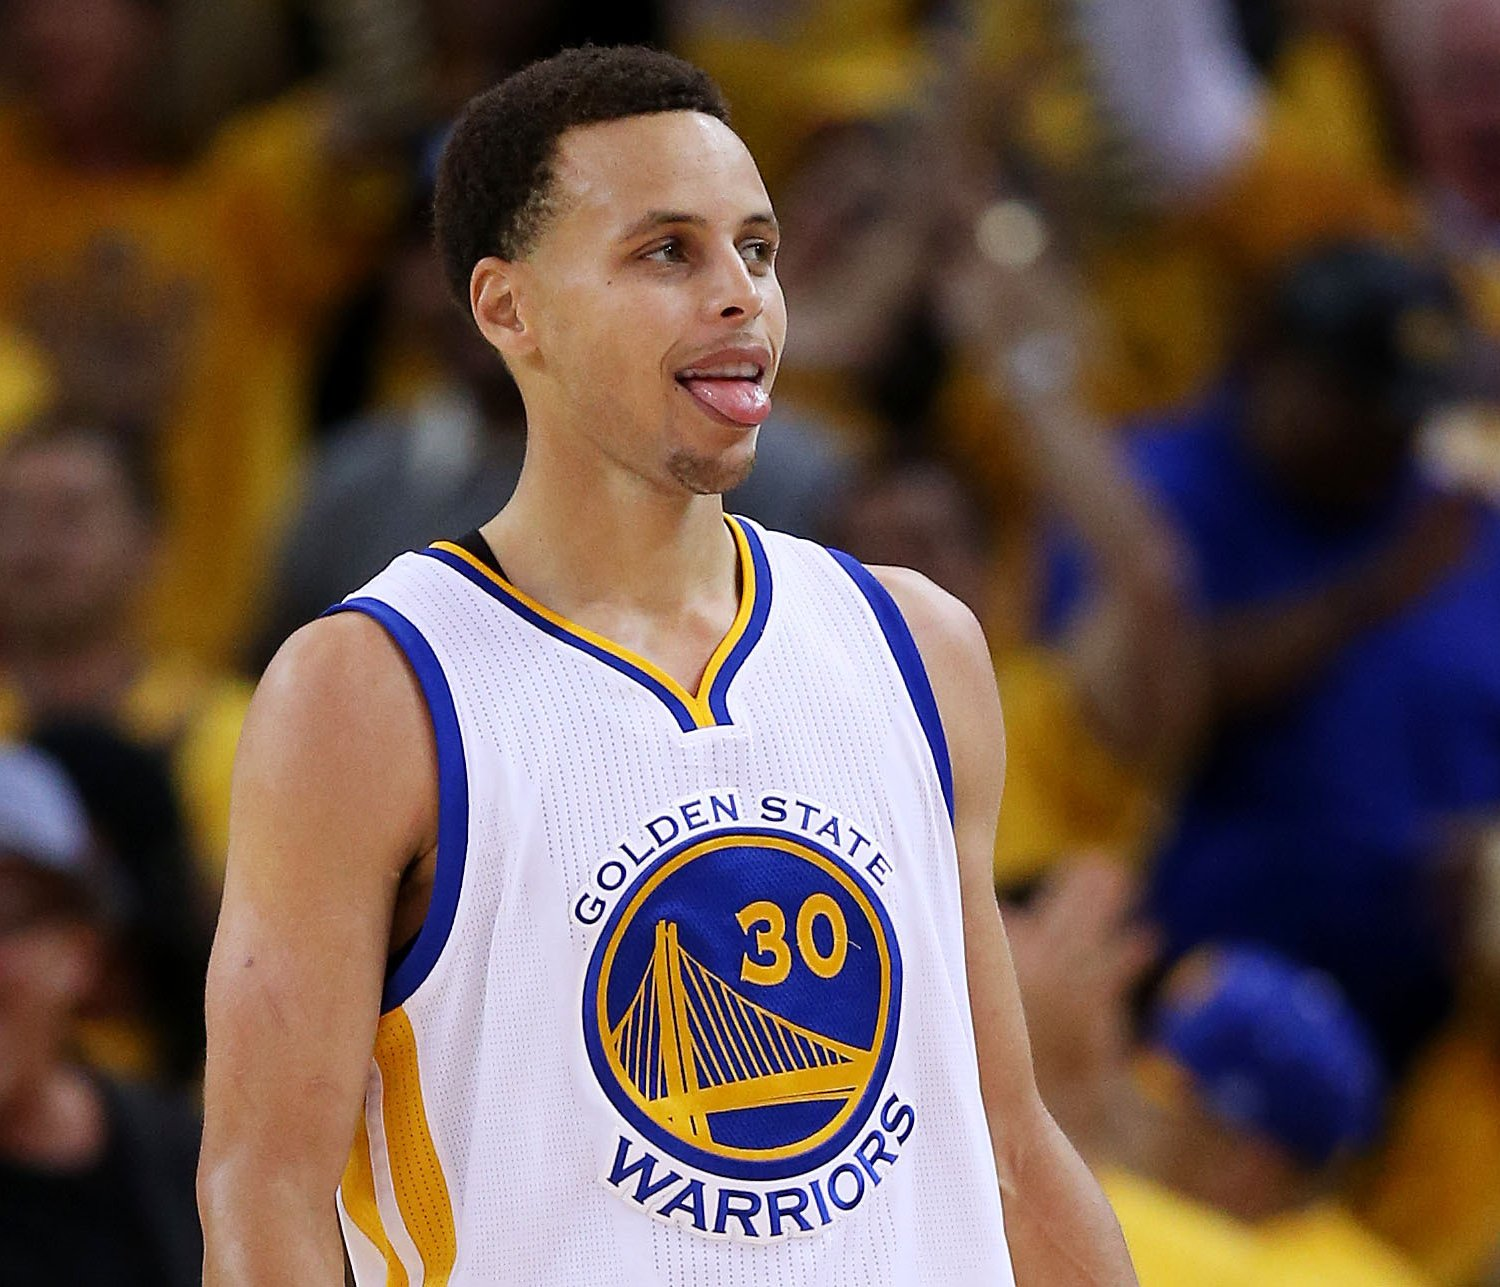 Warriors Vs Rockets Live Stream Game 3: Stephen Curry Fined $5K For Flopping In Warriors Vs